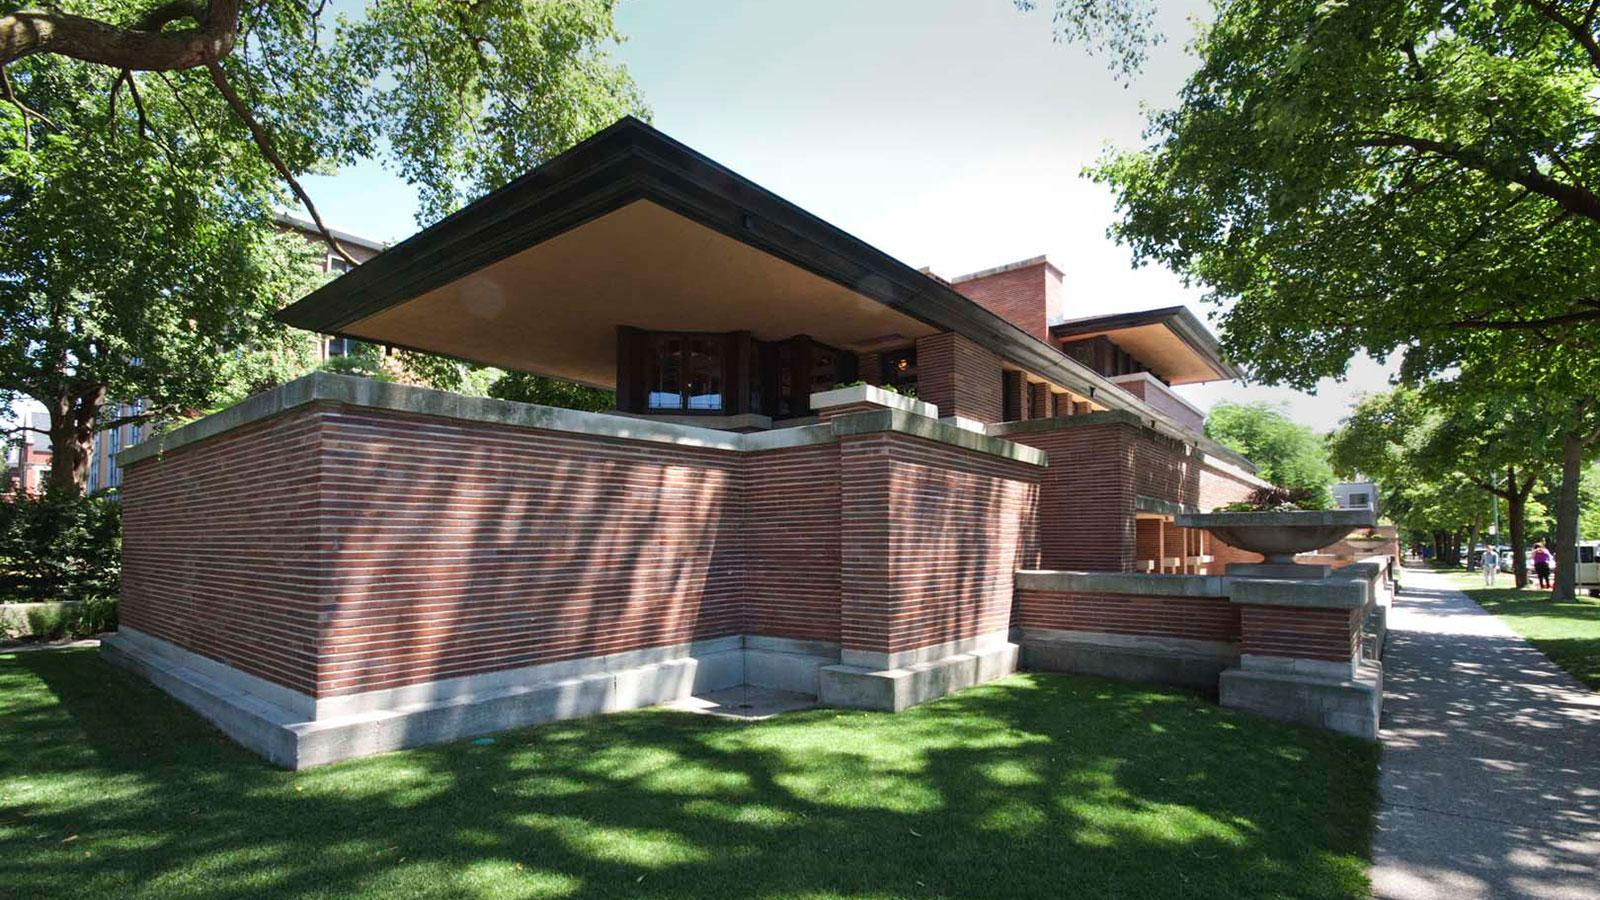 Blueprints For A House Robie House Ten Buildings That Changed America Wttw